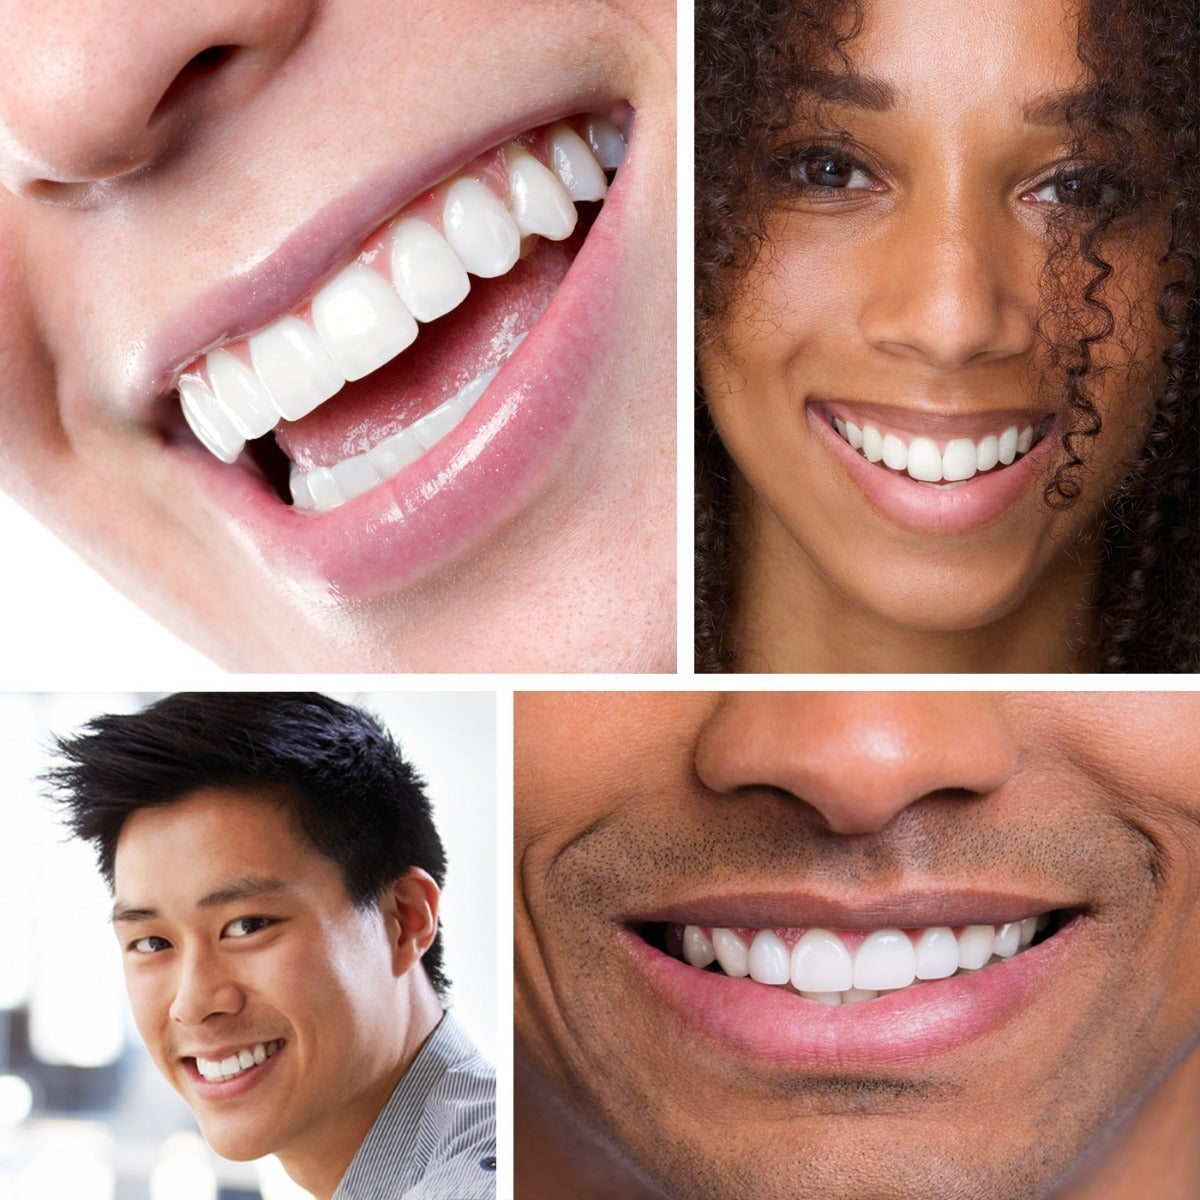 Find a Dentist in Your Area that Specializes in Smile Design